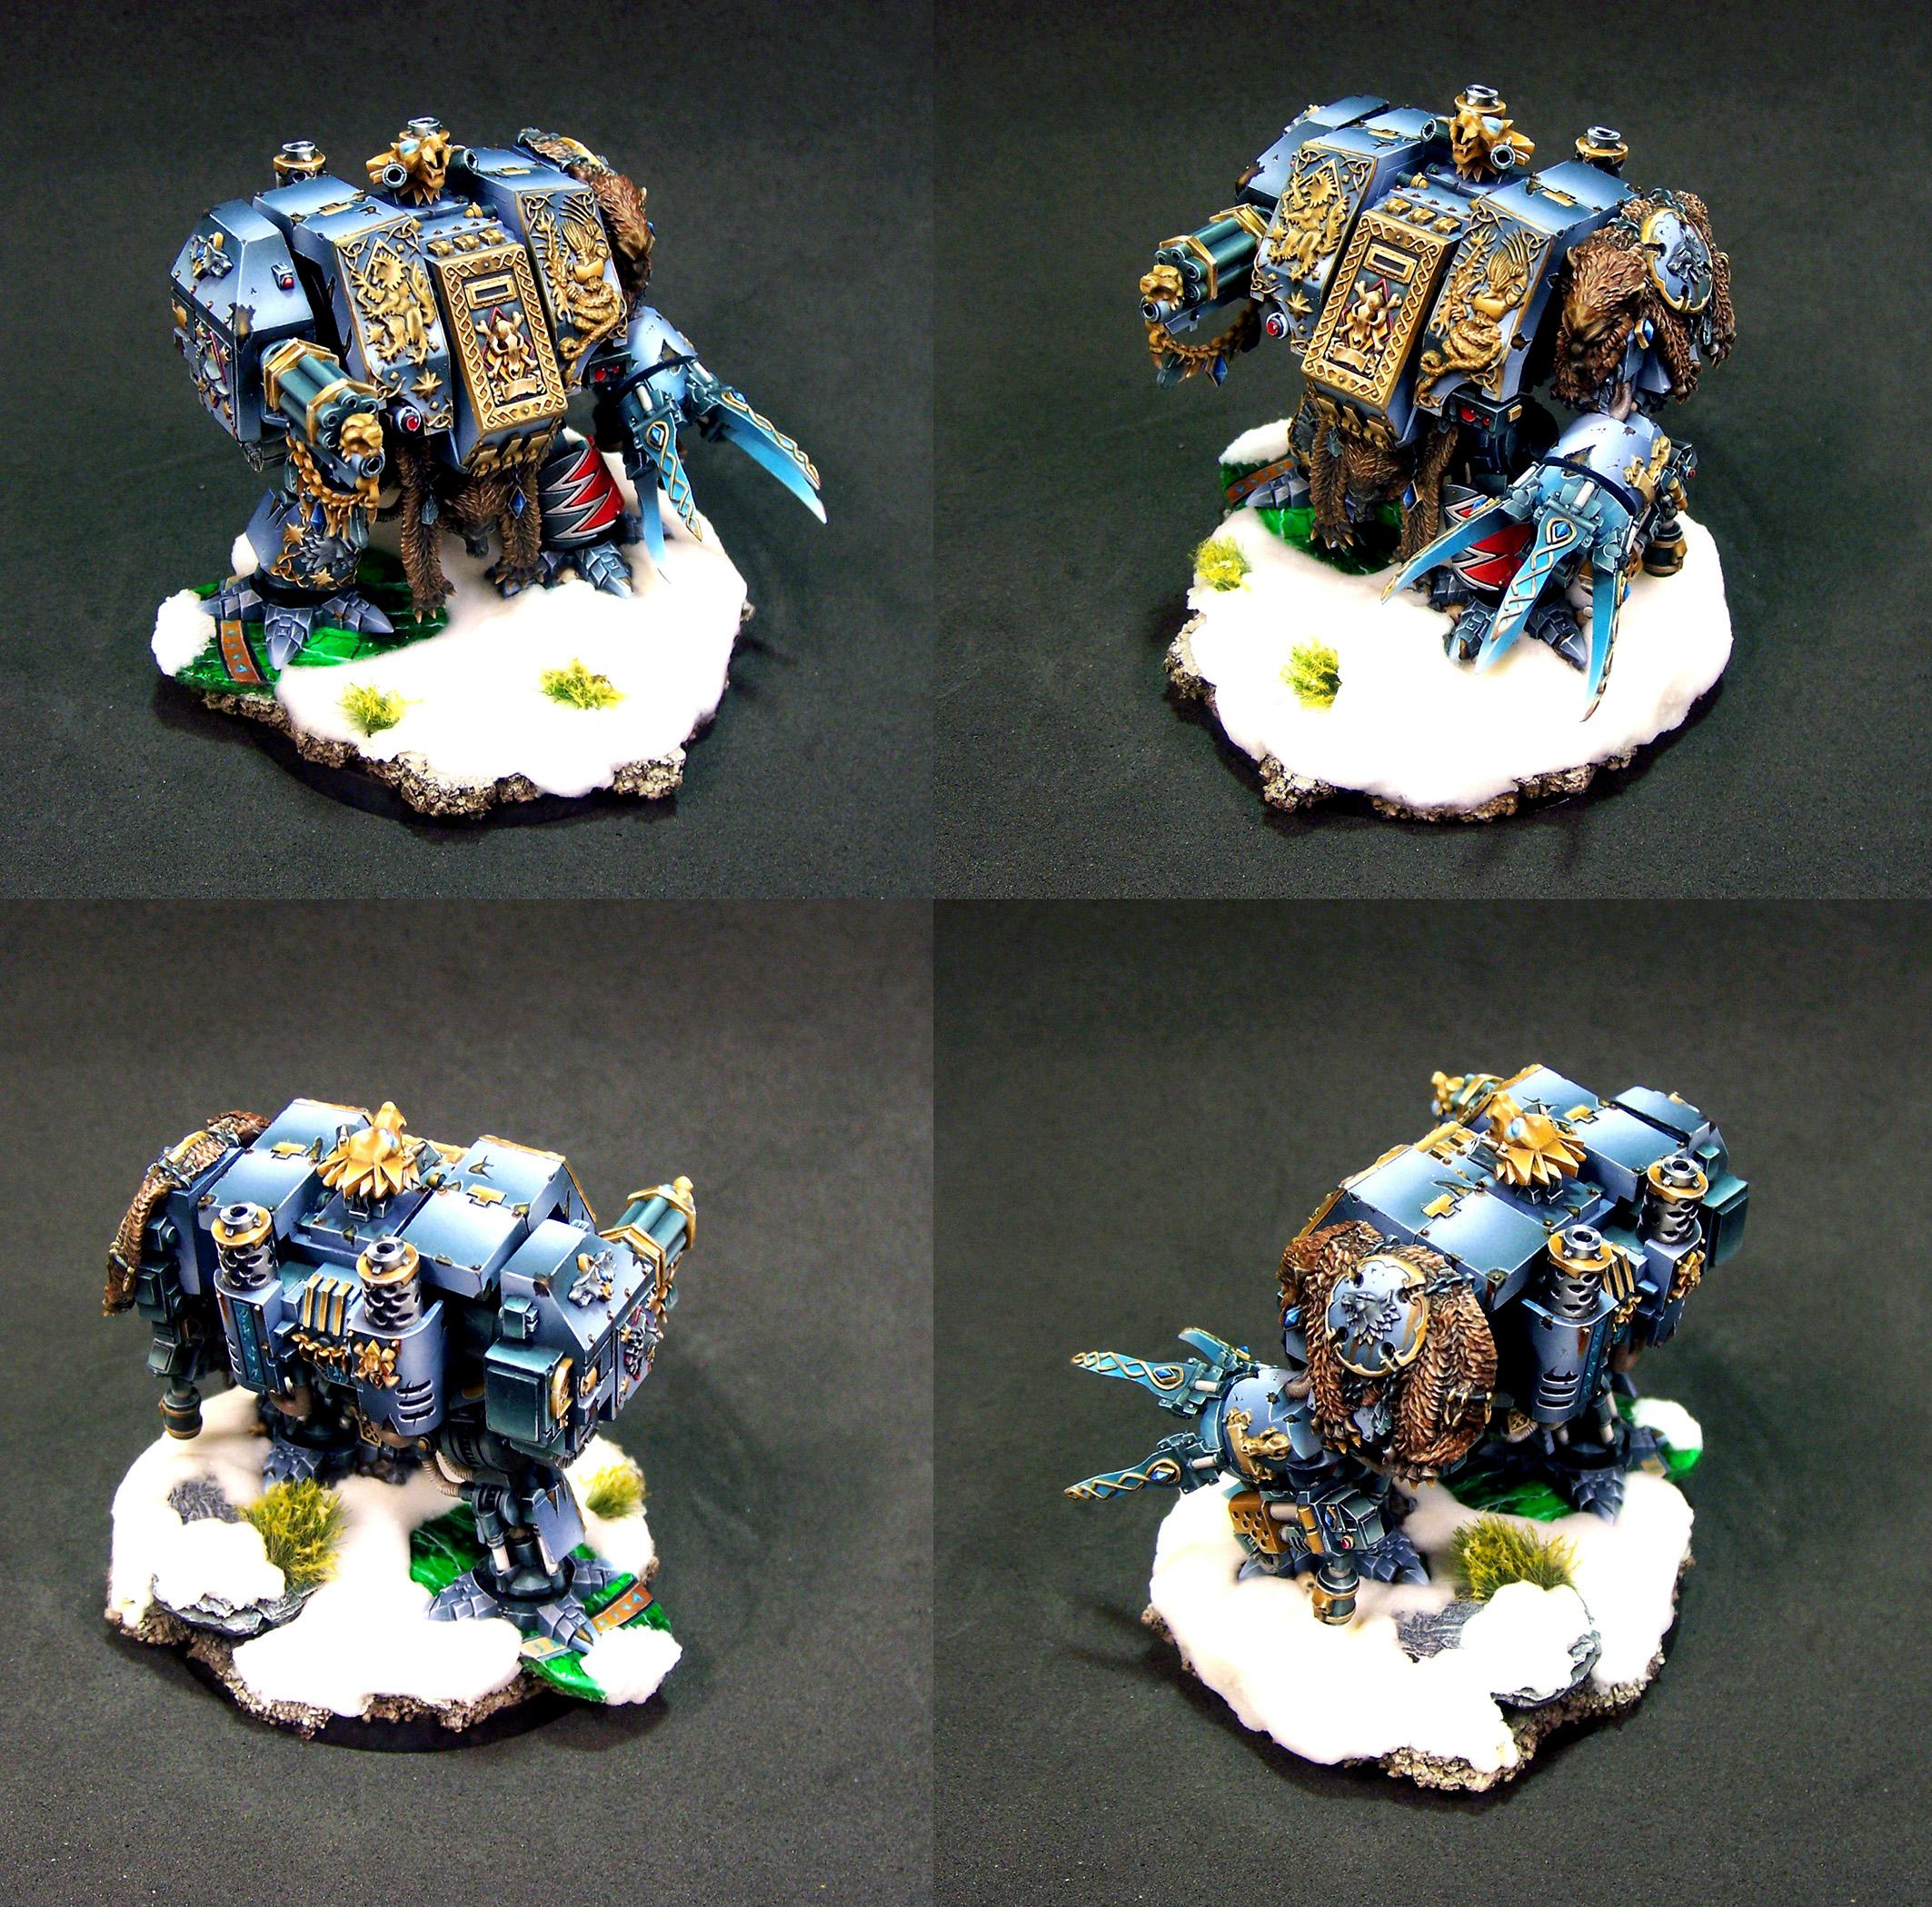 Bjorn, Dreadnought, Space Wolves, Warhammer 40,000